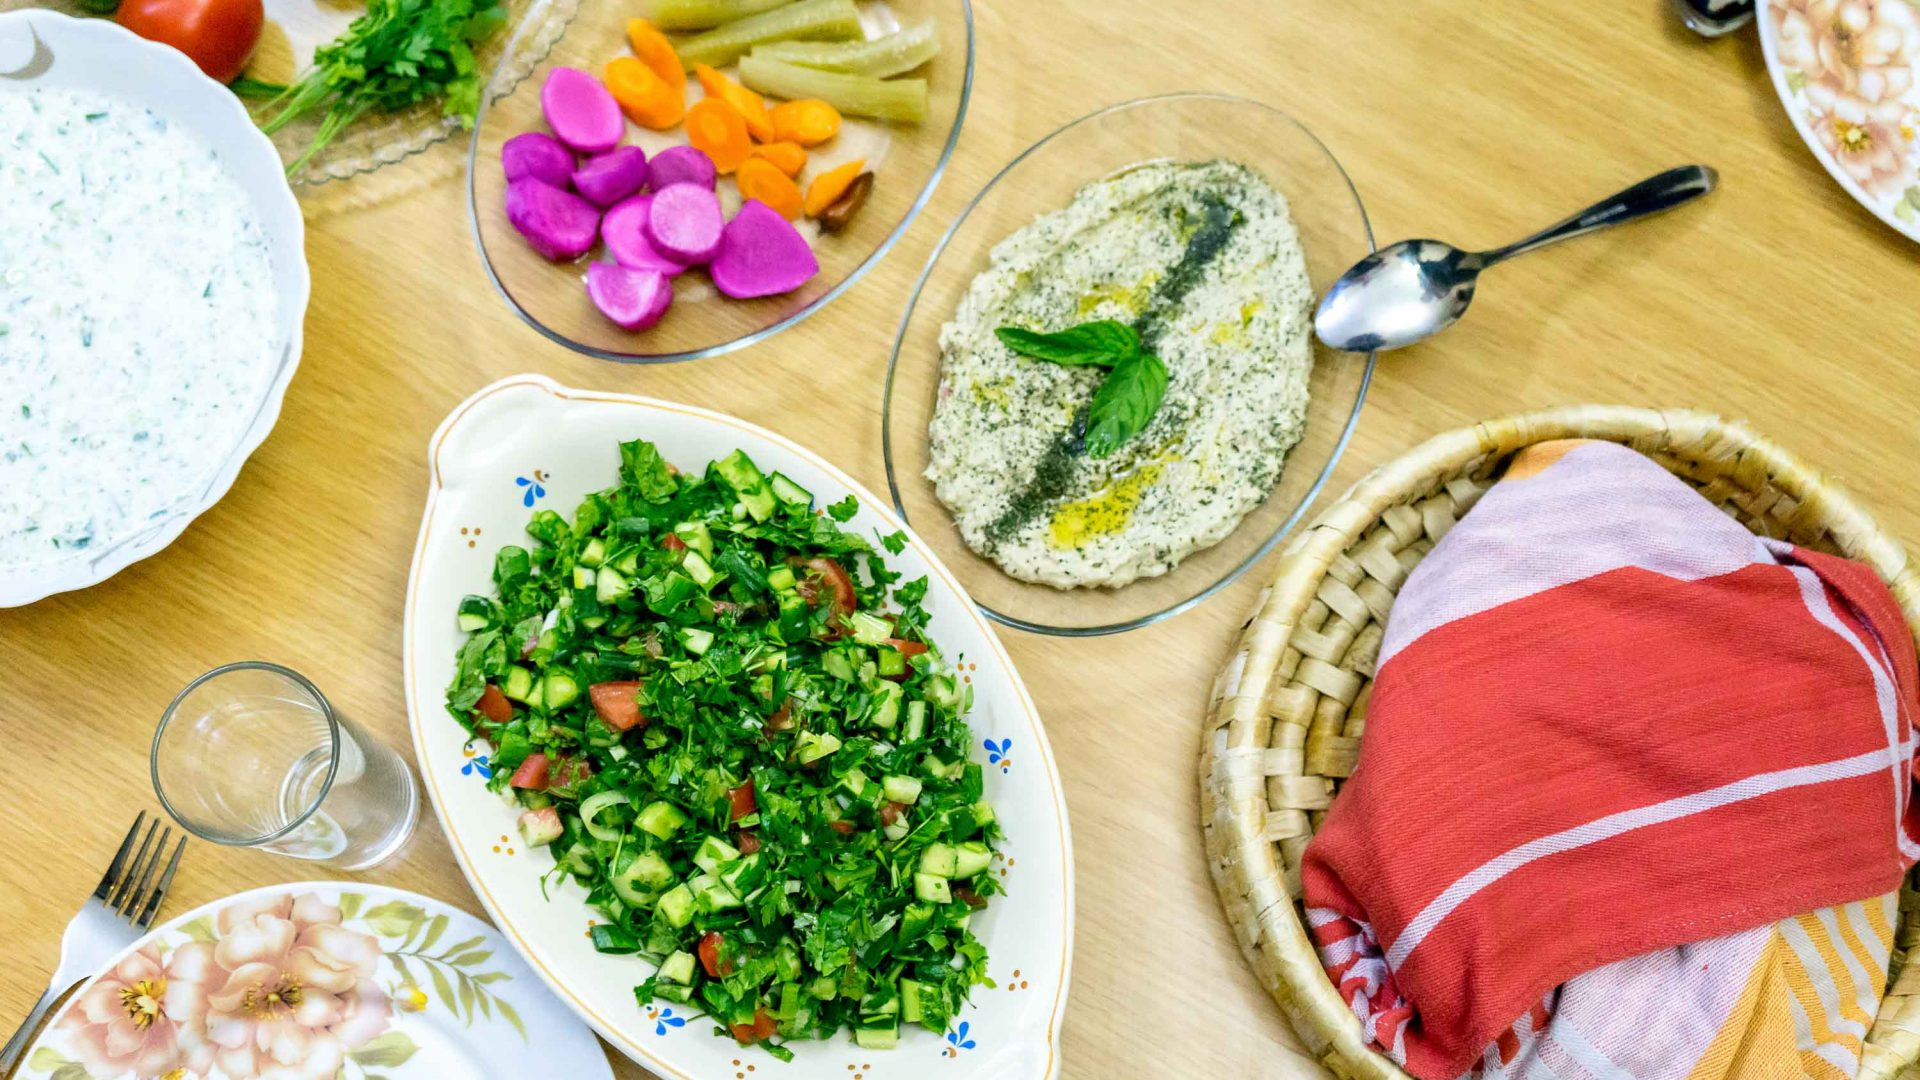 A traditional Jordanian spread at Galsoum's Kitchen including hummus, tabbouleh, and a yoghurt sauce called Cha'cheel.